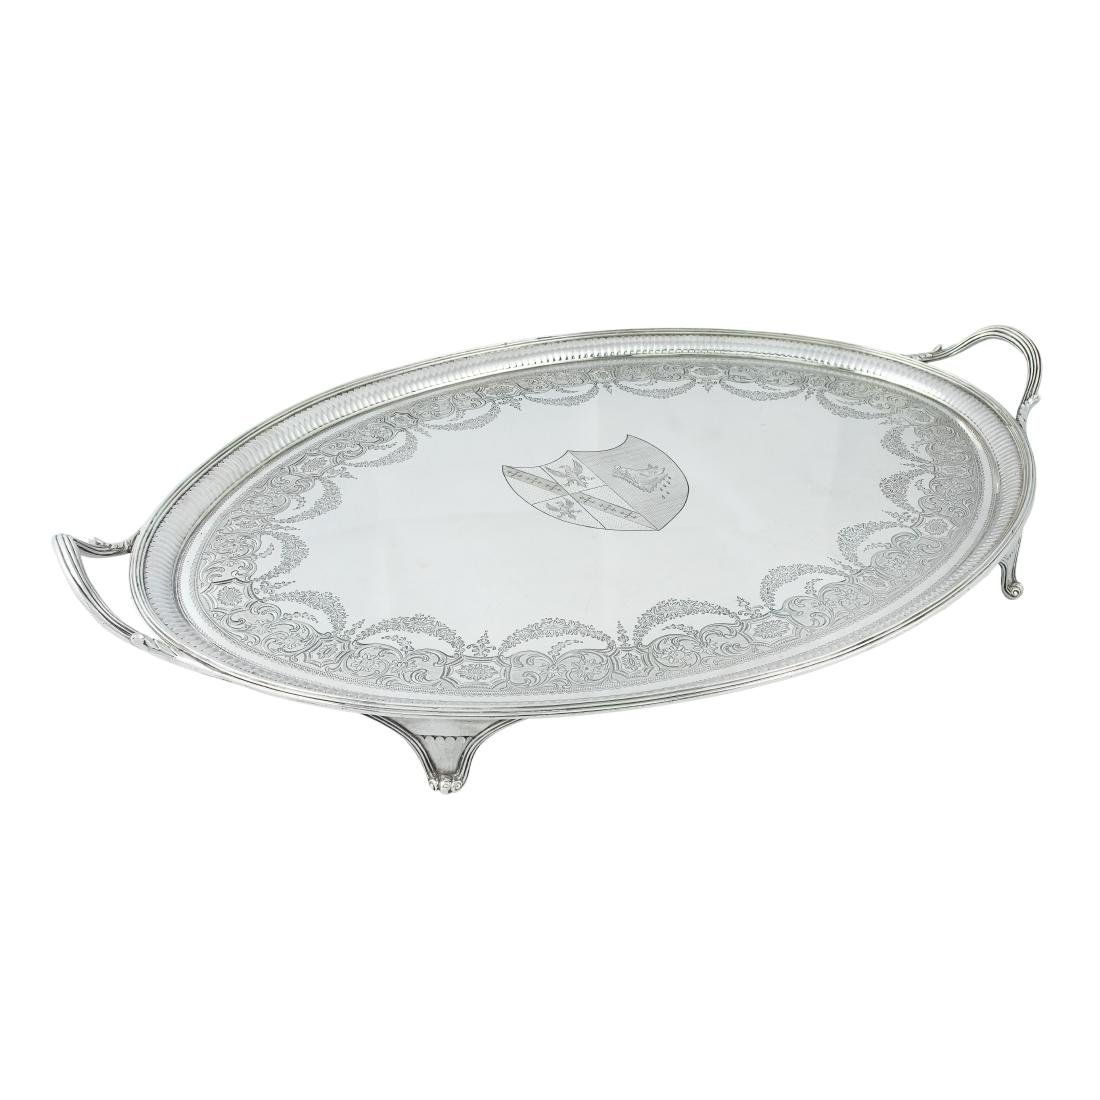 A George III two-handled oval silver tray